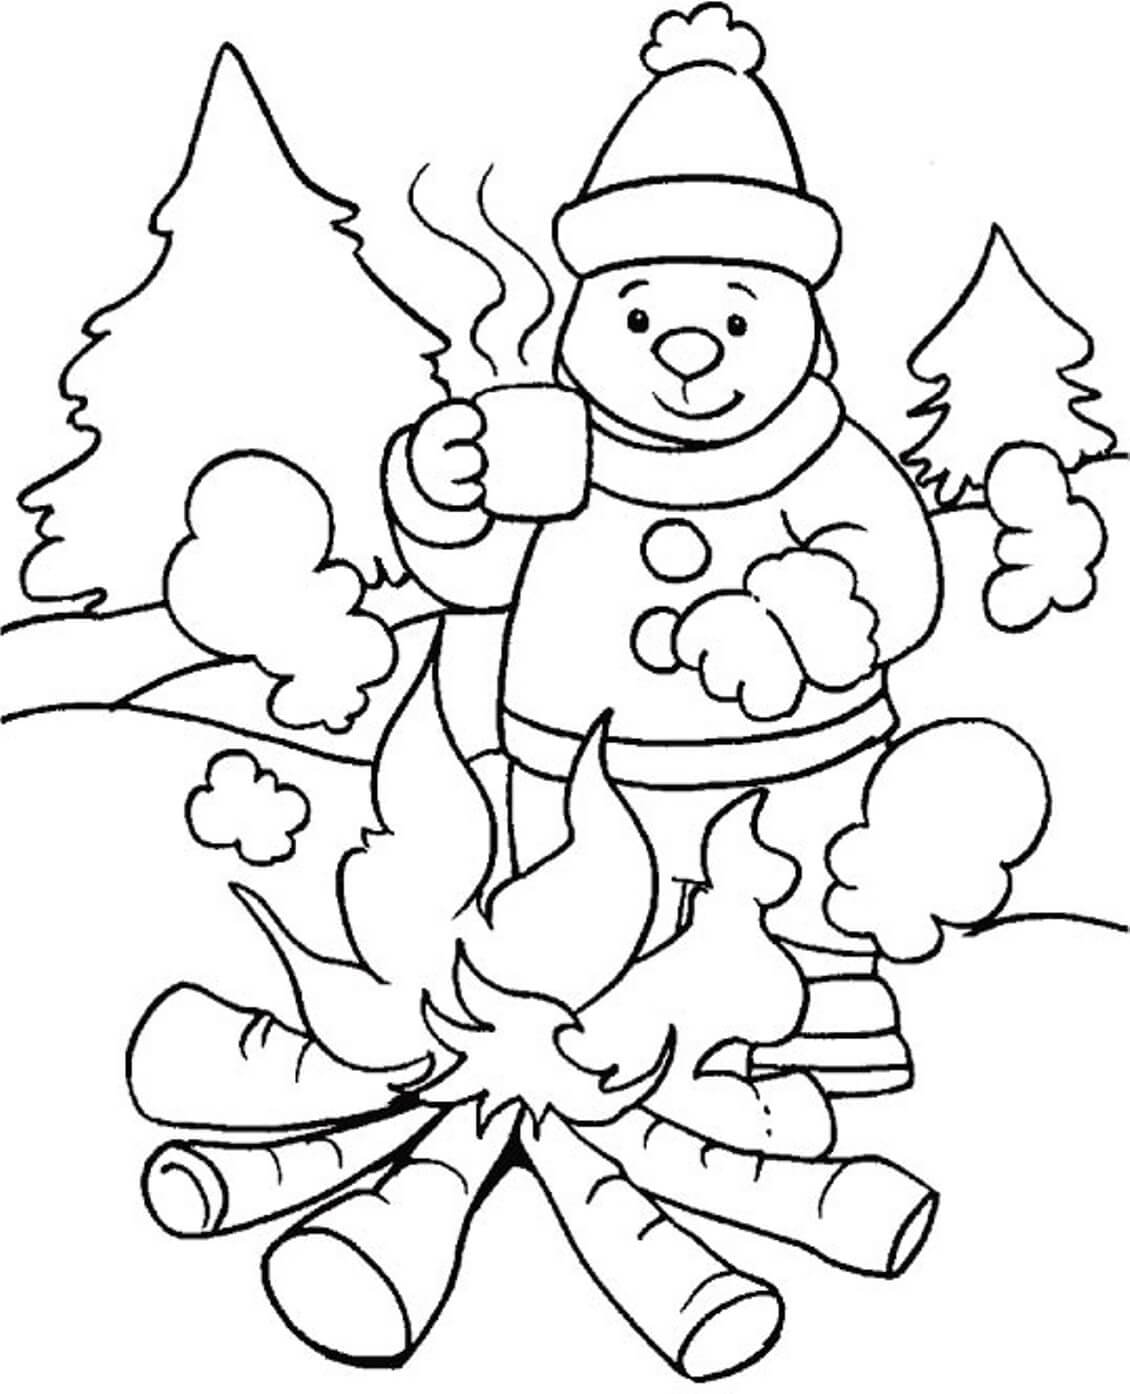 winter coloring sheets printable winter puzzle coloring pages printable winter themed winter printable coloring sheets